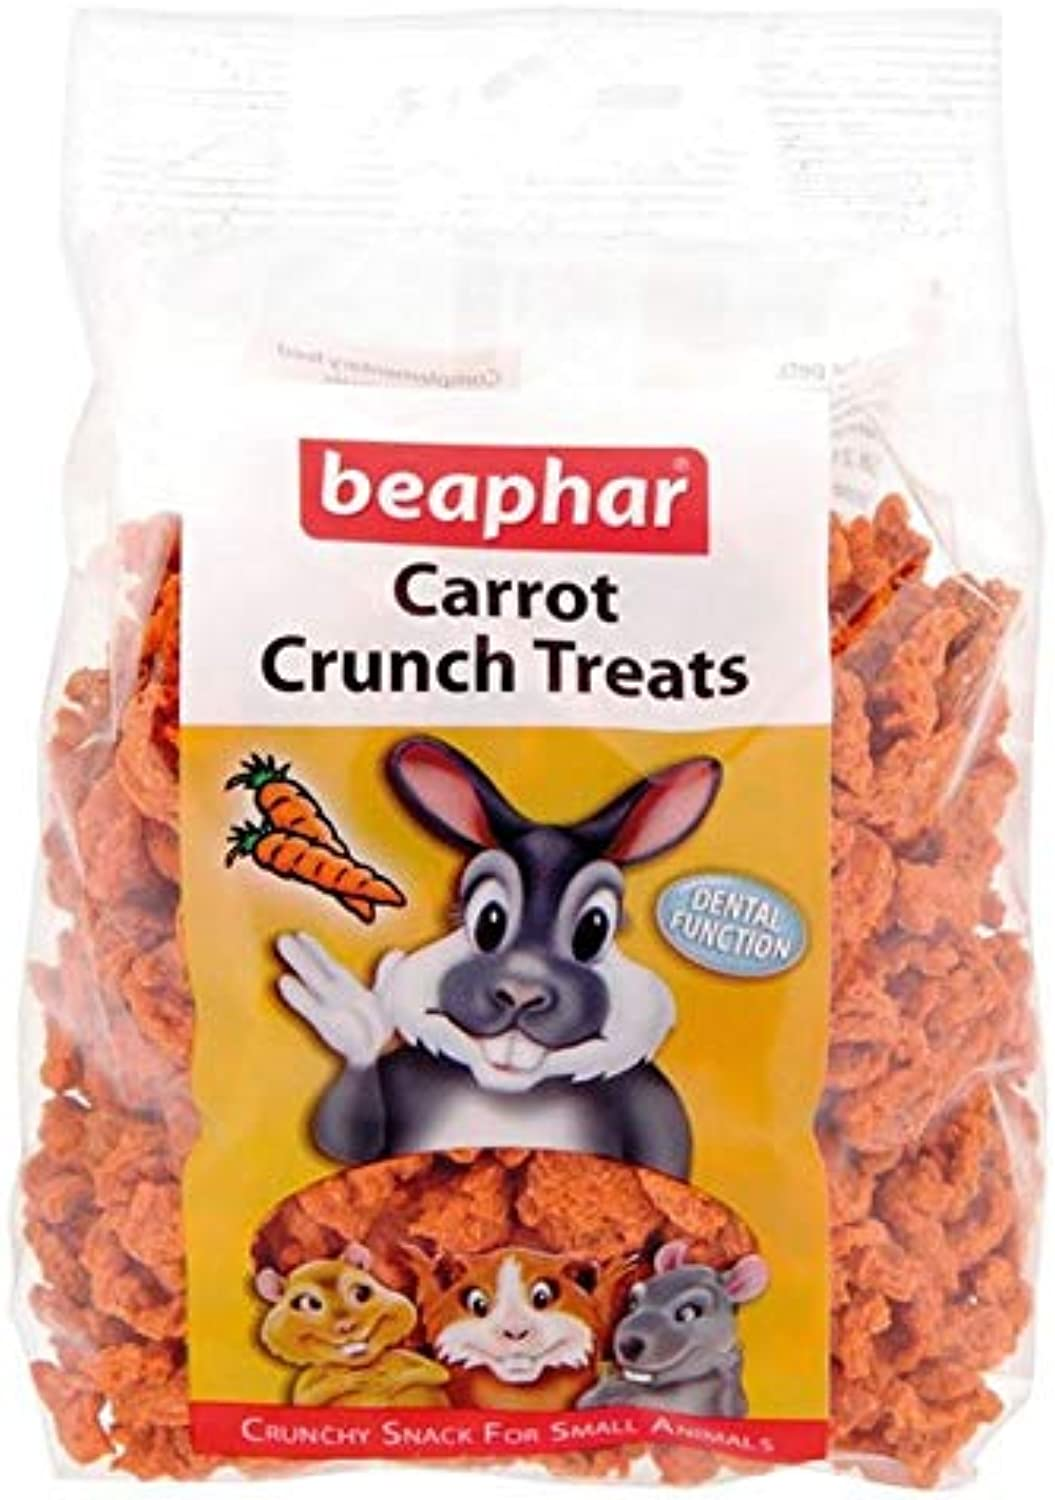 6X Beaphar Carred Crunch for Small Animals 150g